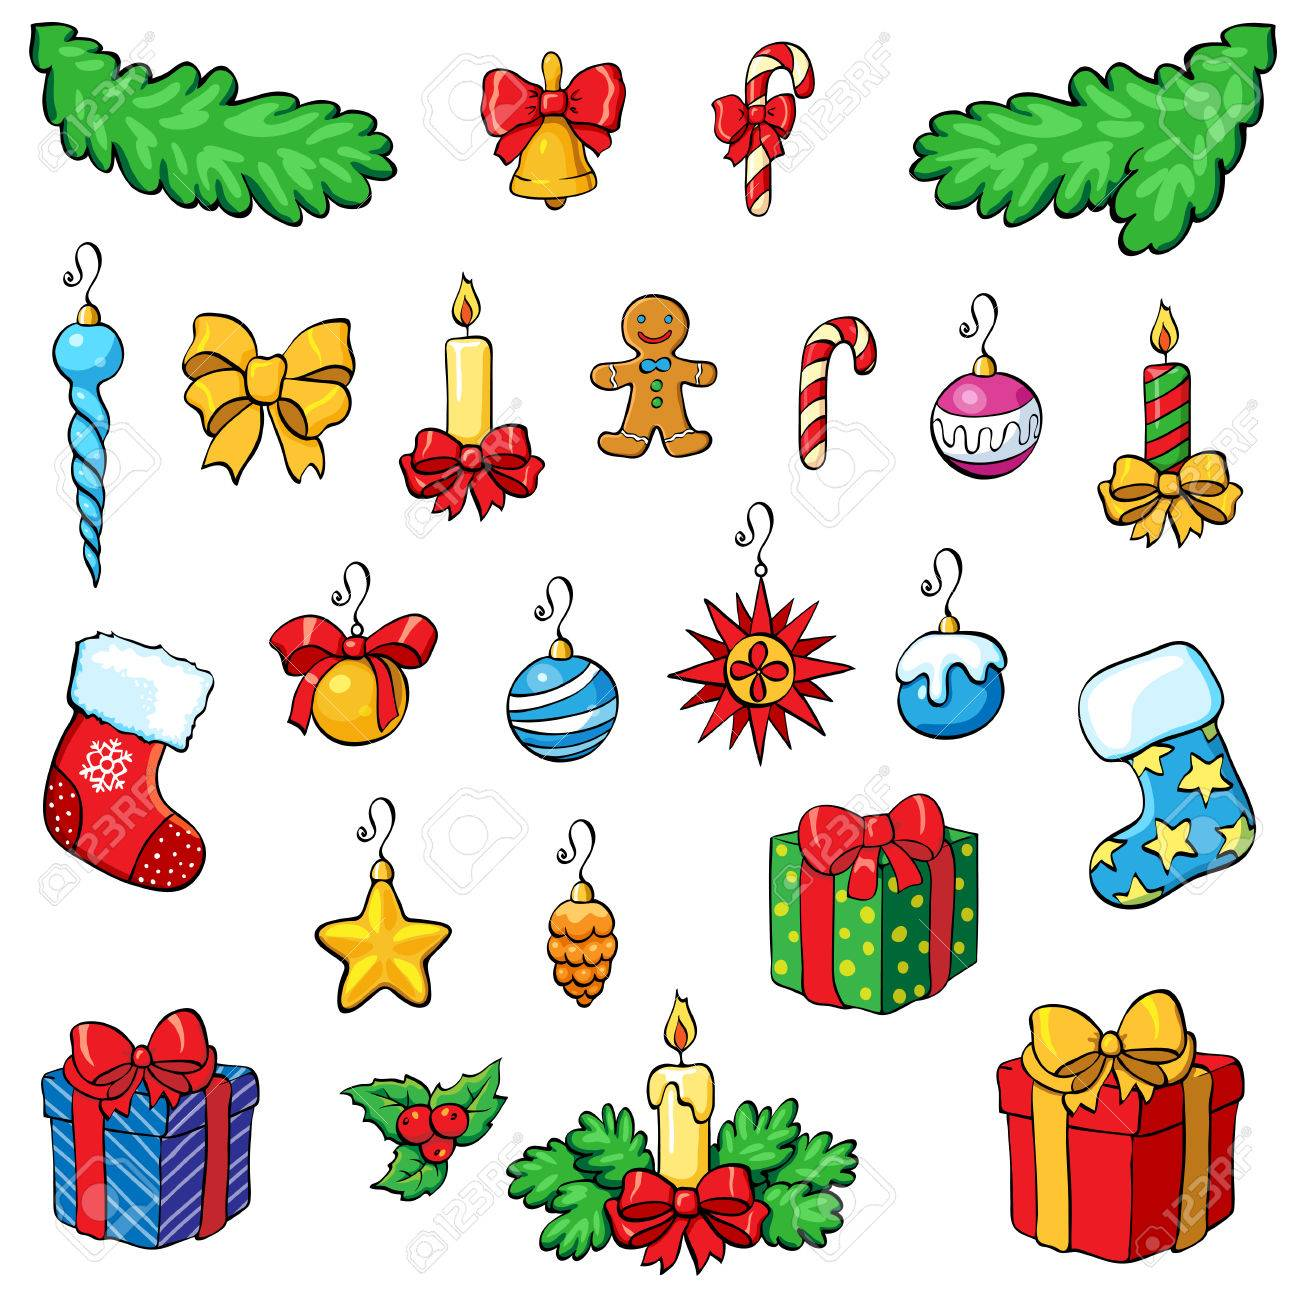 Christmas Vectors.Christmas Vector Set Christmas Decorations With Gifts